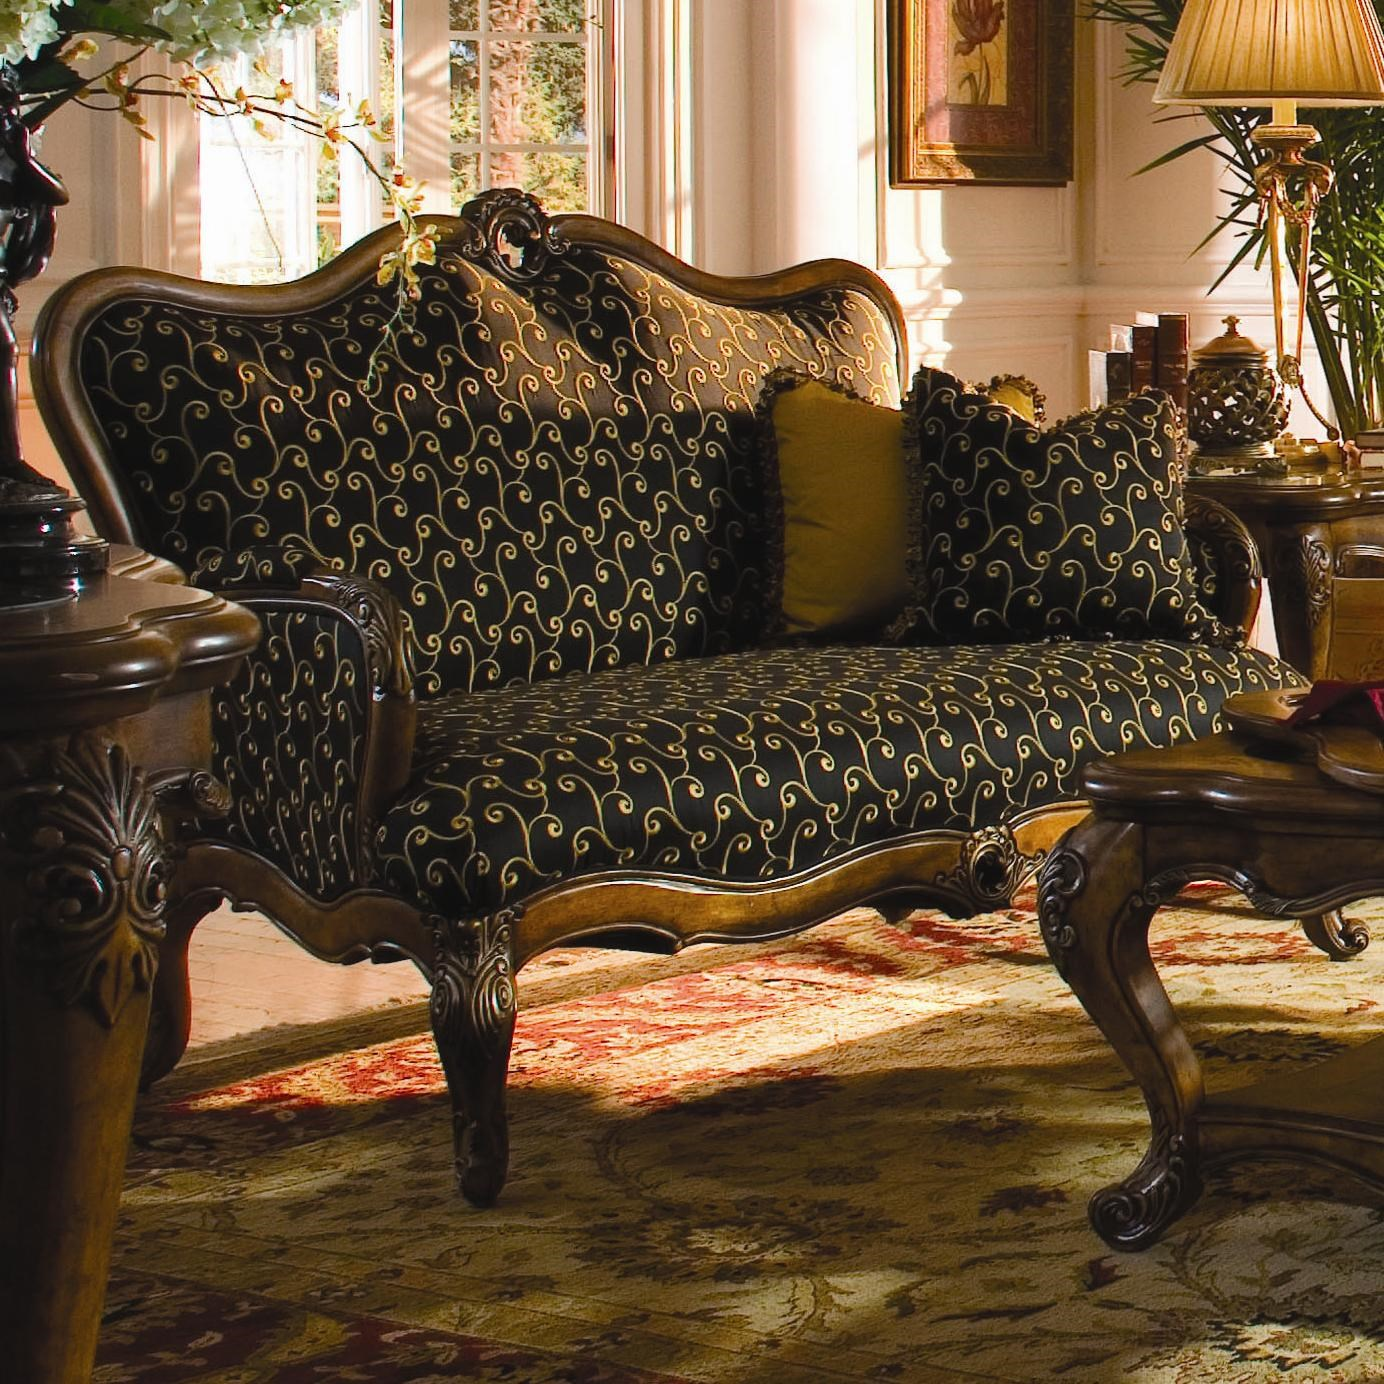 Michael Amini Palais Royale Wood Trim Settee With Hand Carved Accents